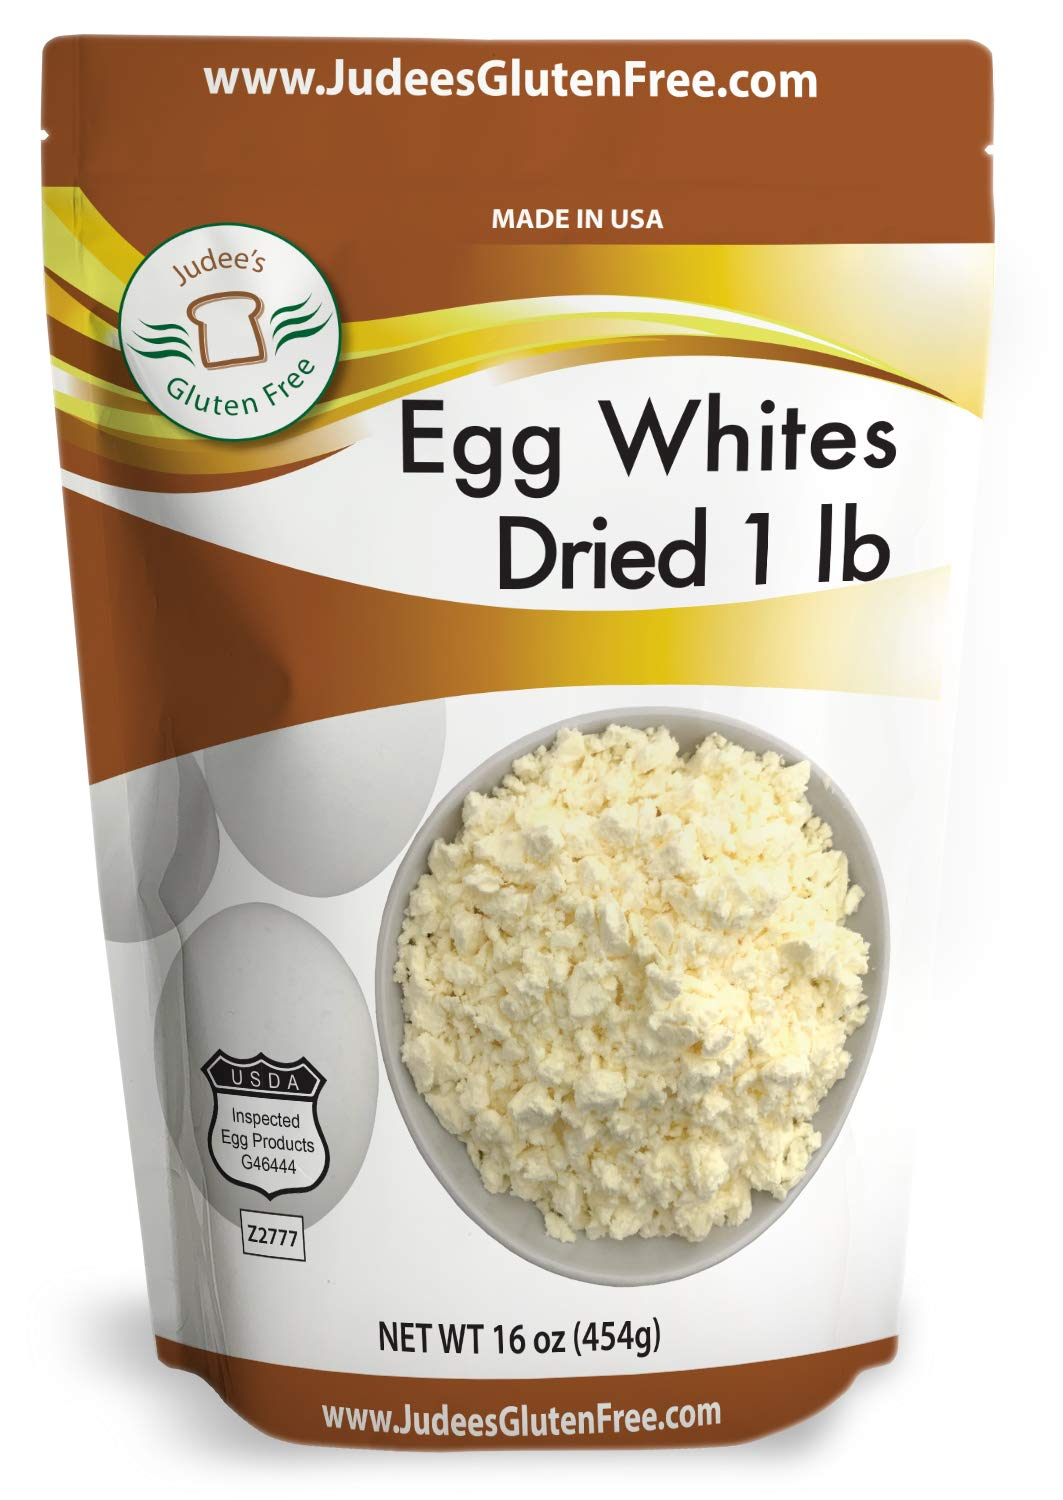 Judee's Dried Egg White Protein 1 lb (16 oz) - Baking, Meringue, Royal Icing, Smoothies. 4g Protein per Serving, Non GMO, USA Made, USDA Certified, Made from Fresh Eggs (45 lb Bulk Size Available)